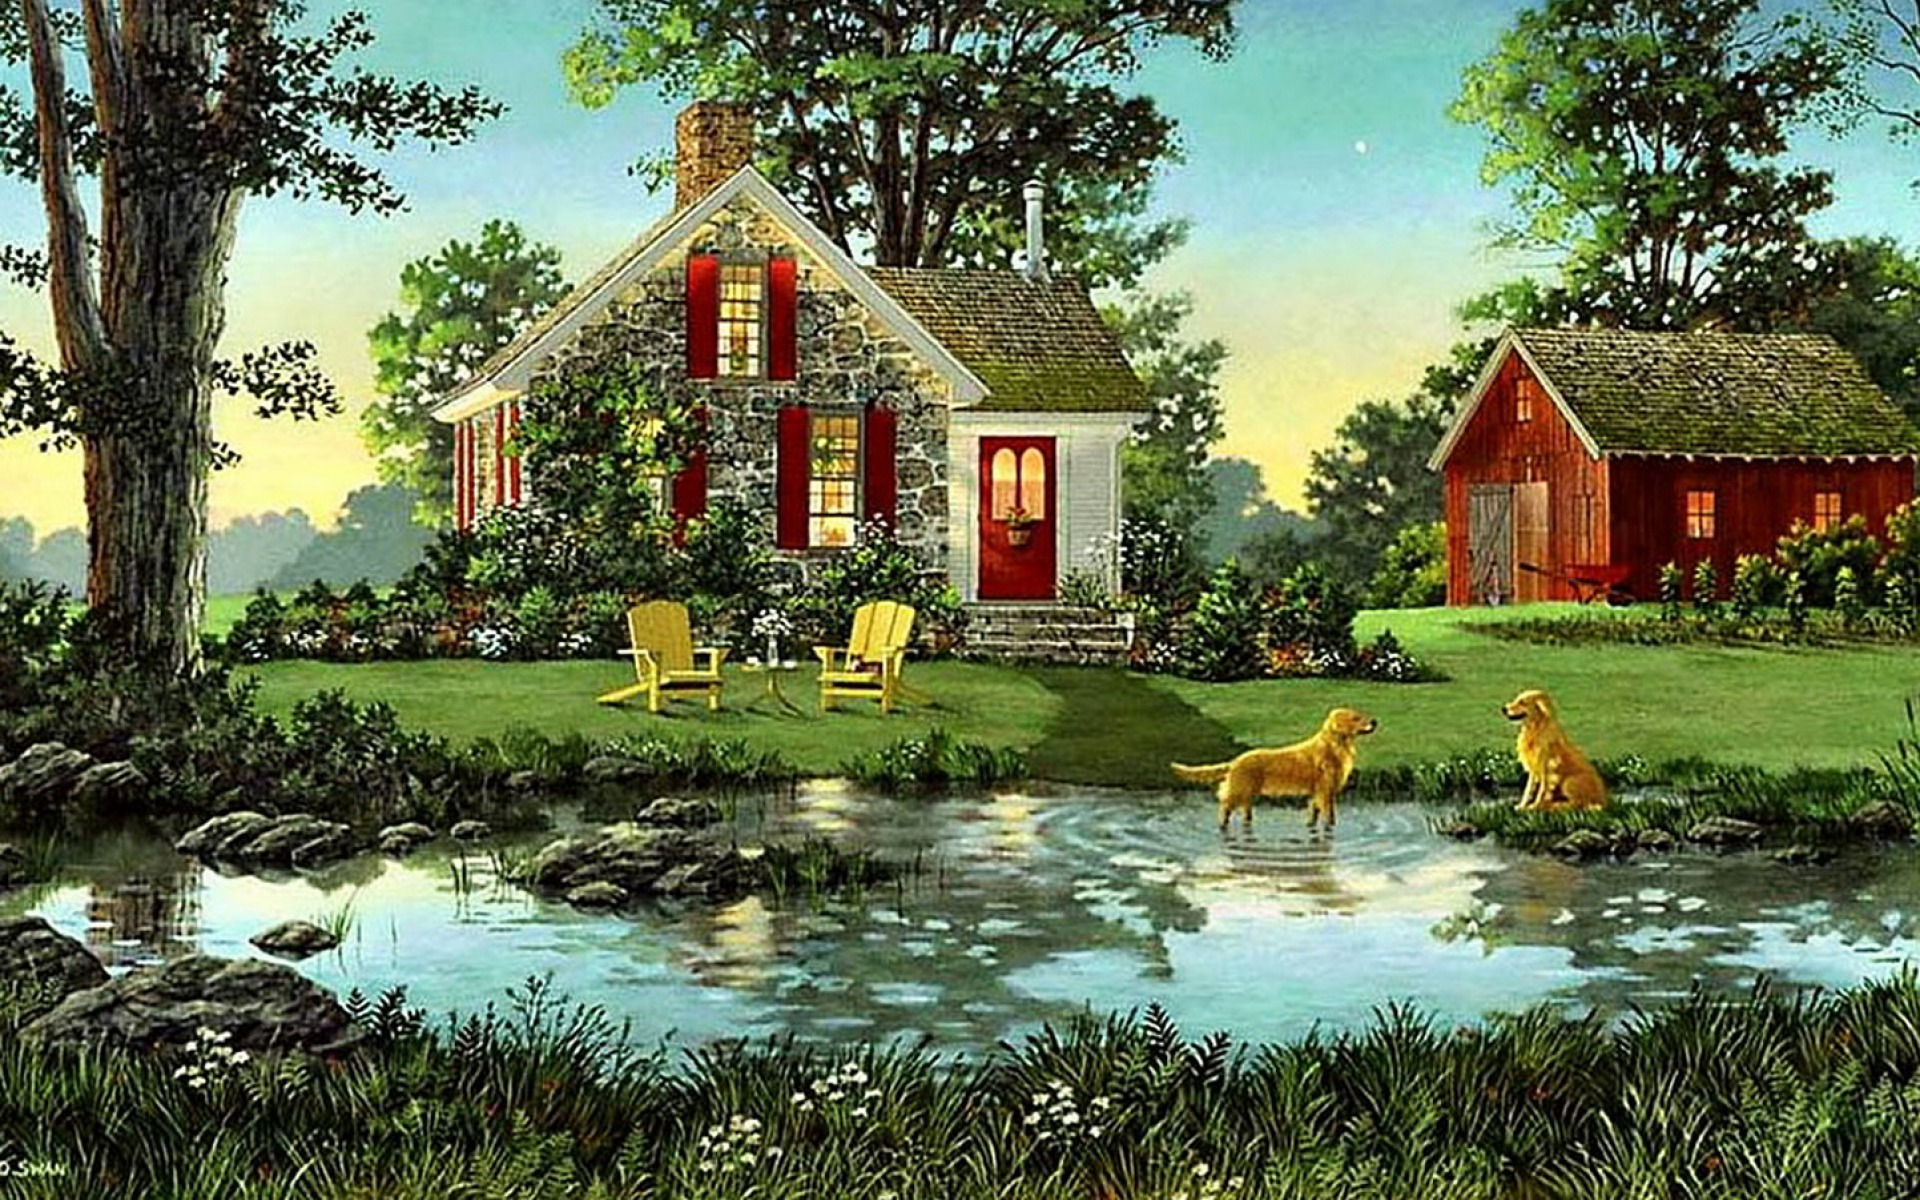 House shed dogs pond nature wallpapers house shed dogs for Wallpaper home photos